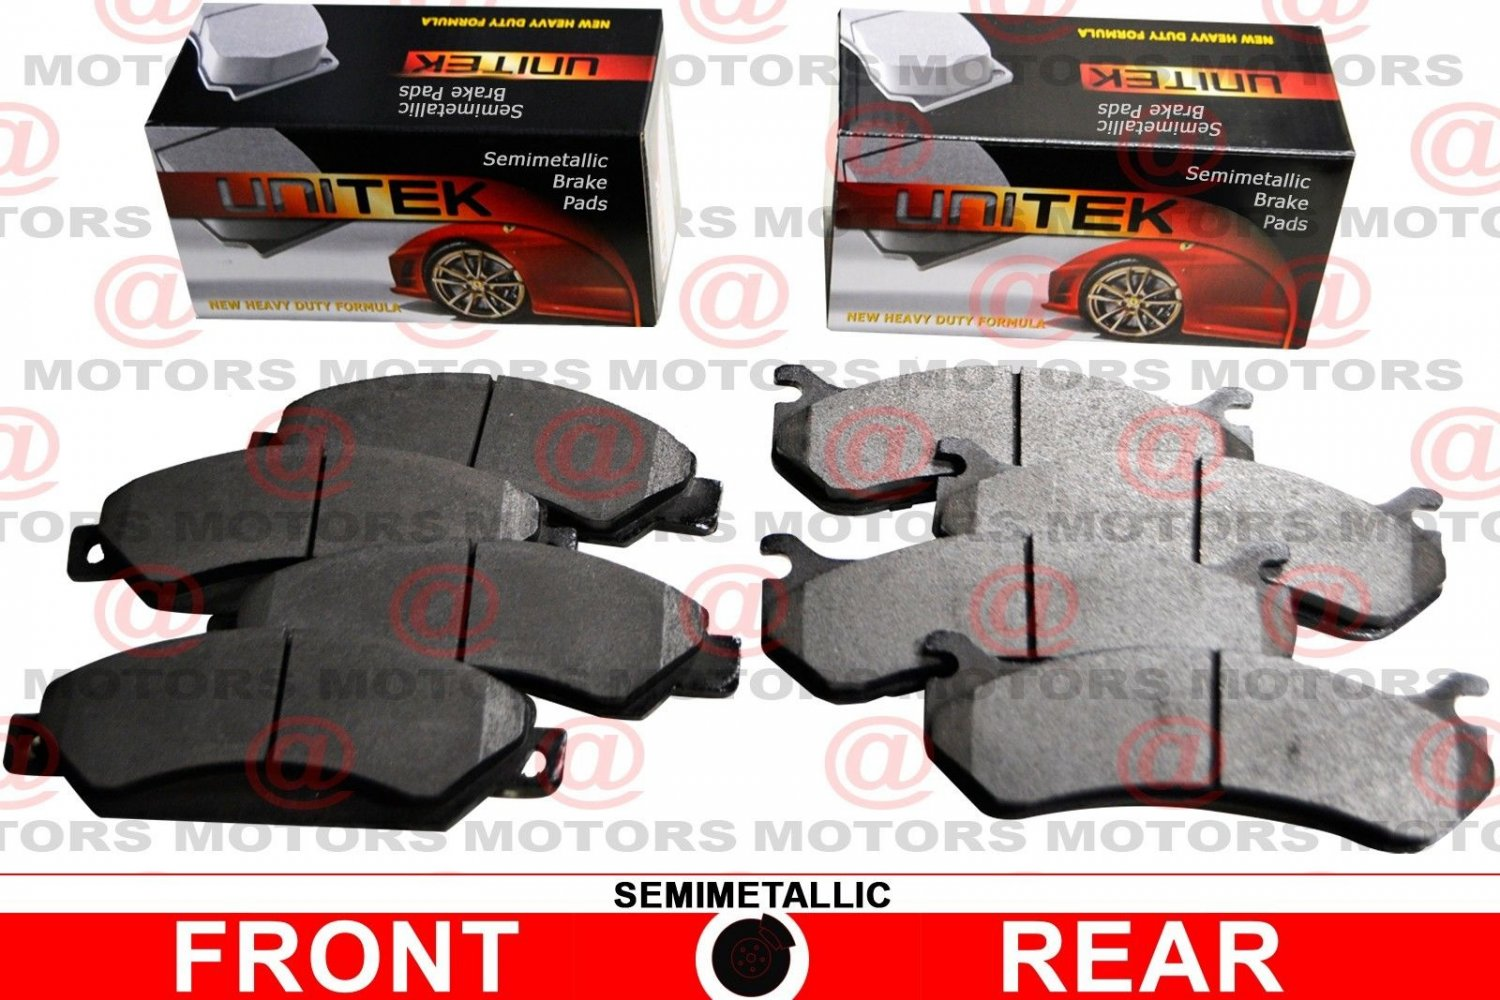 For Ford Escape 2005-2008 Front Rear Left Right Brake Pads Semi-Metallic New